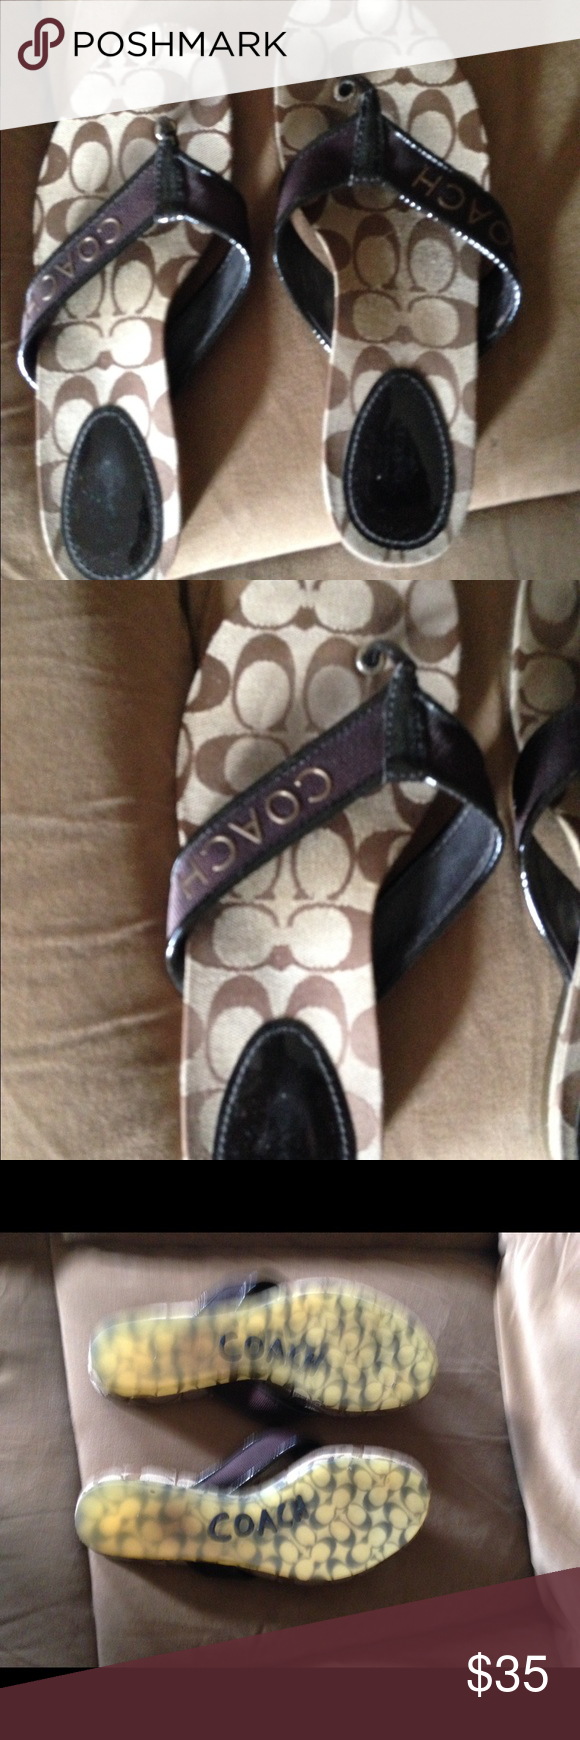 Coach flip flops Brown and tan, pre-loved Coach Shoes Sandals